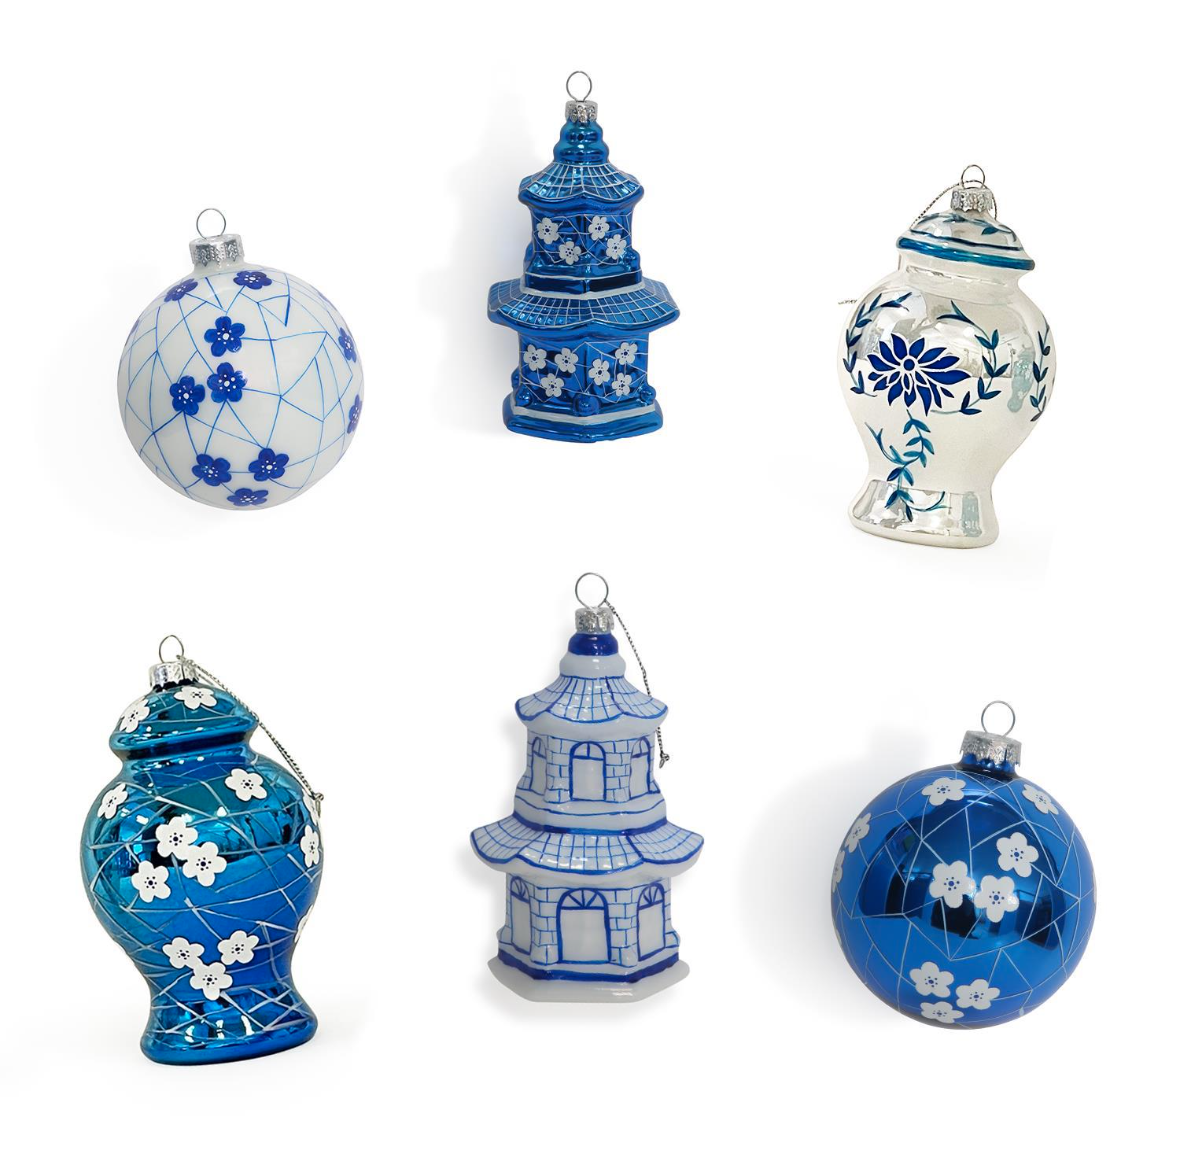 Two's Company Blue and White Ornament